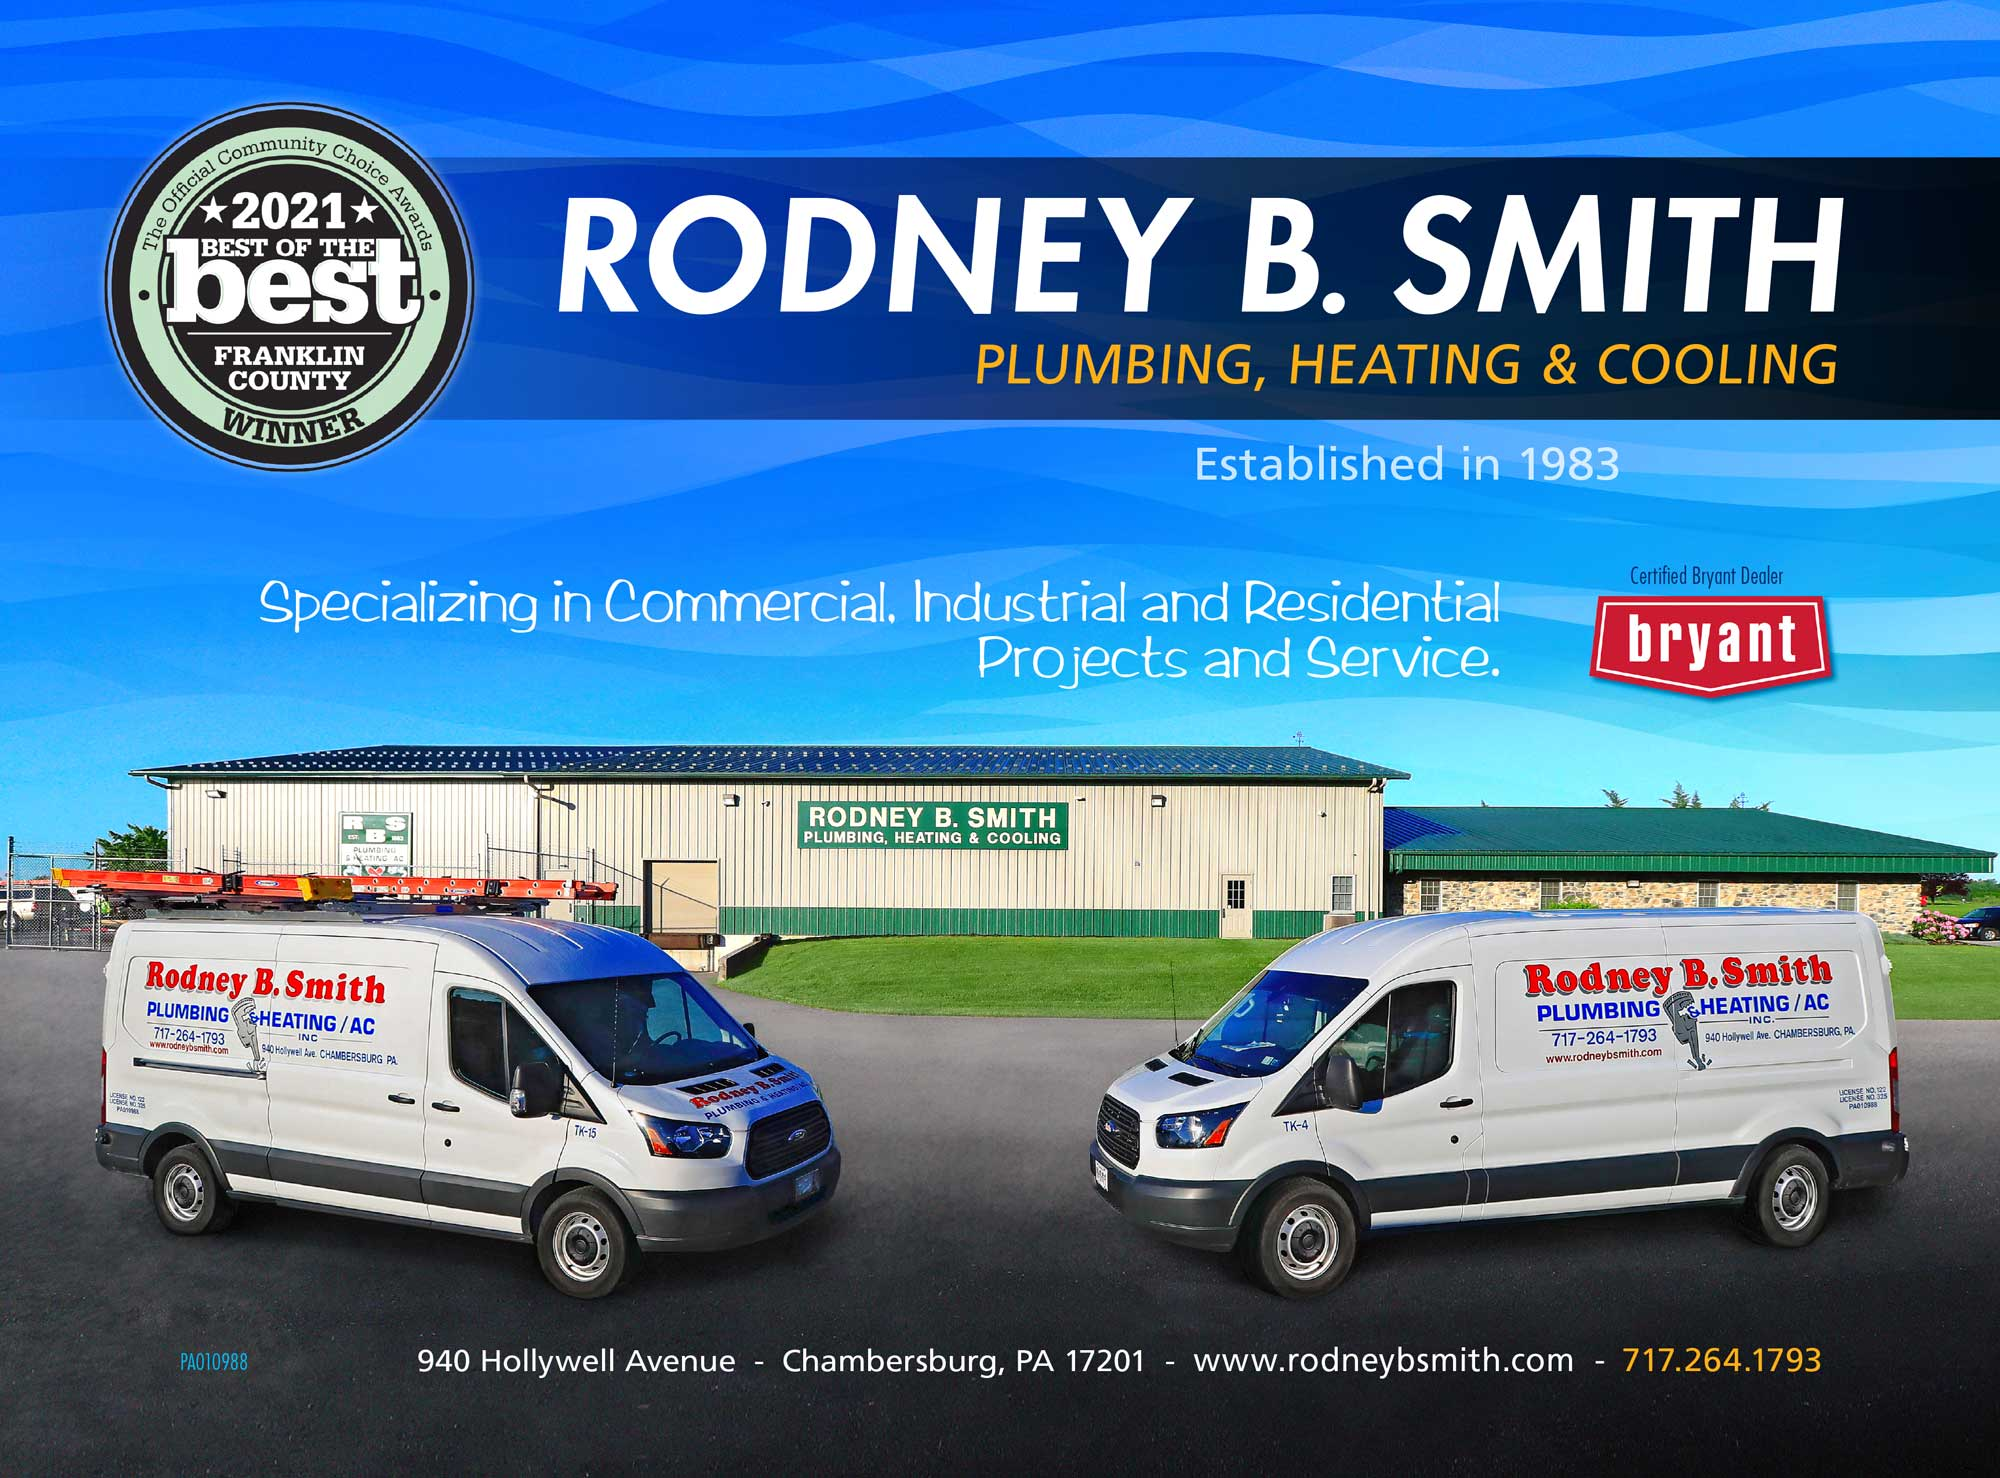 """<center>Rodney B. Smith Plumbing, Heating & Cooling   <b><a href=""""https://rodneybsmith.com"""" target=""""_blank"""" rel=""""noopener noreferrer"""">CLICK HERE to view the website</a></b></center>"""